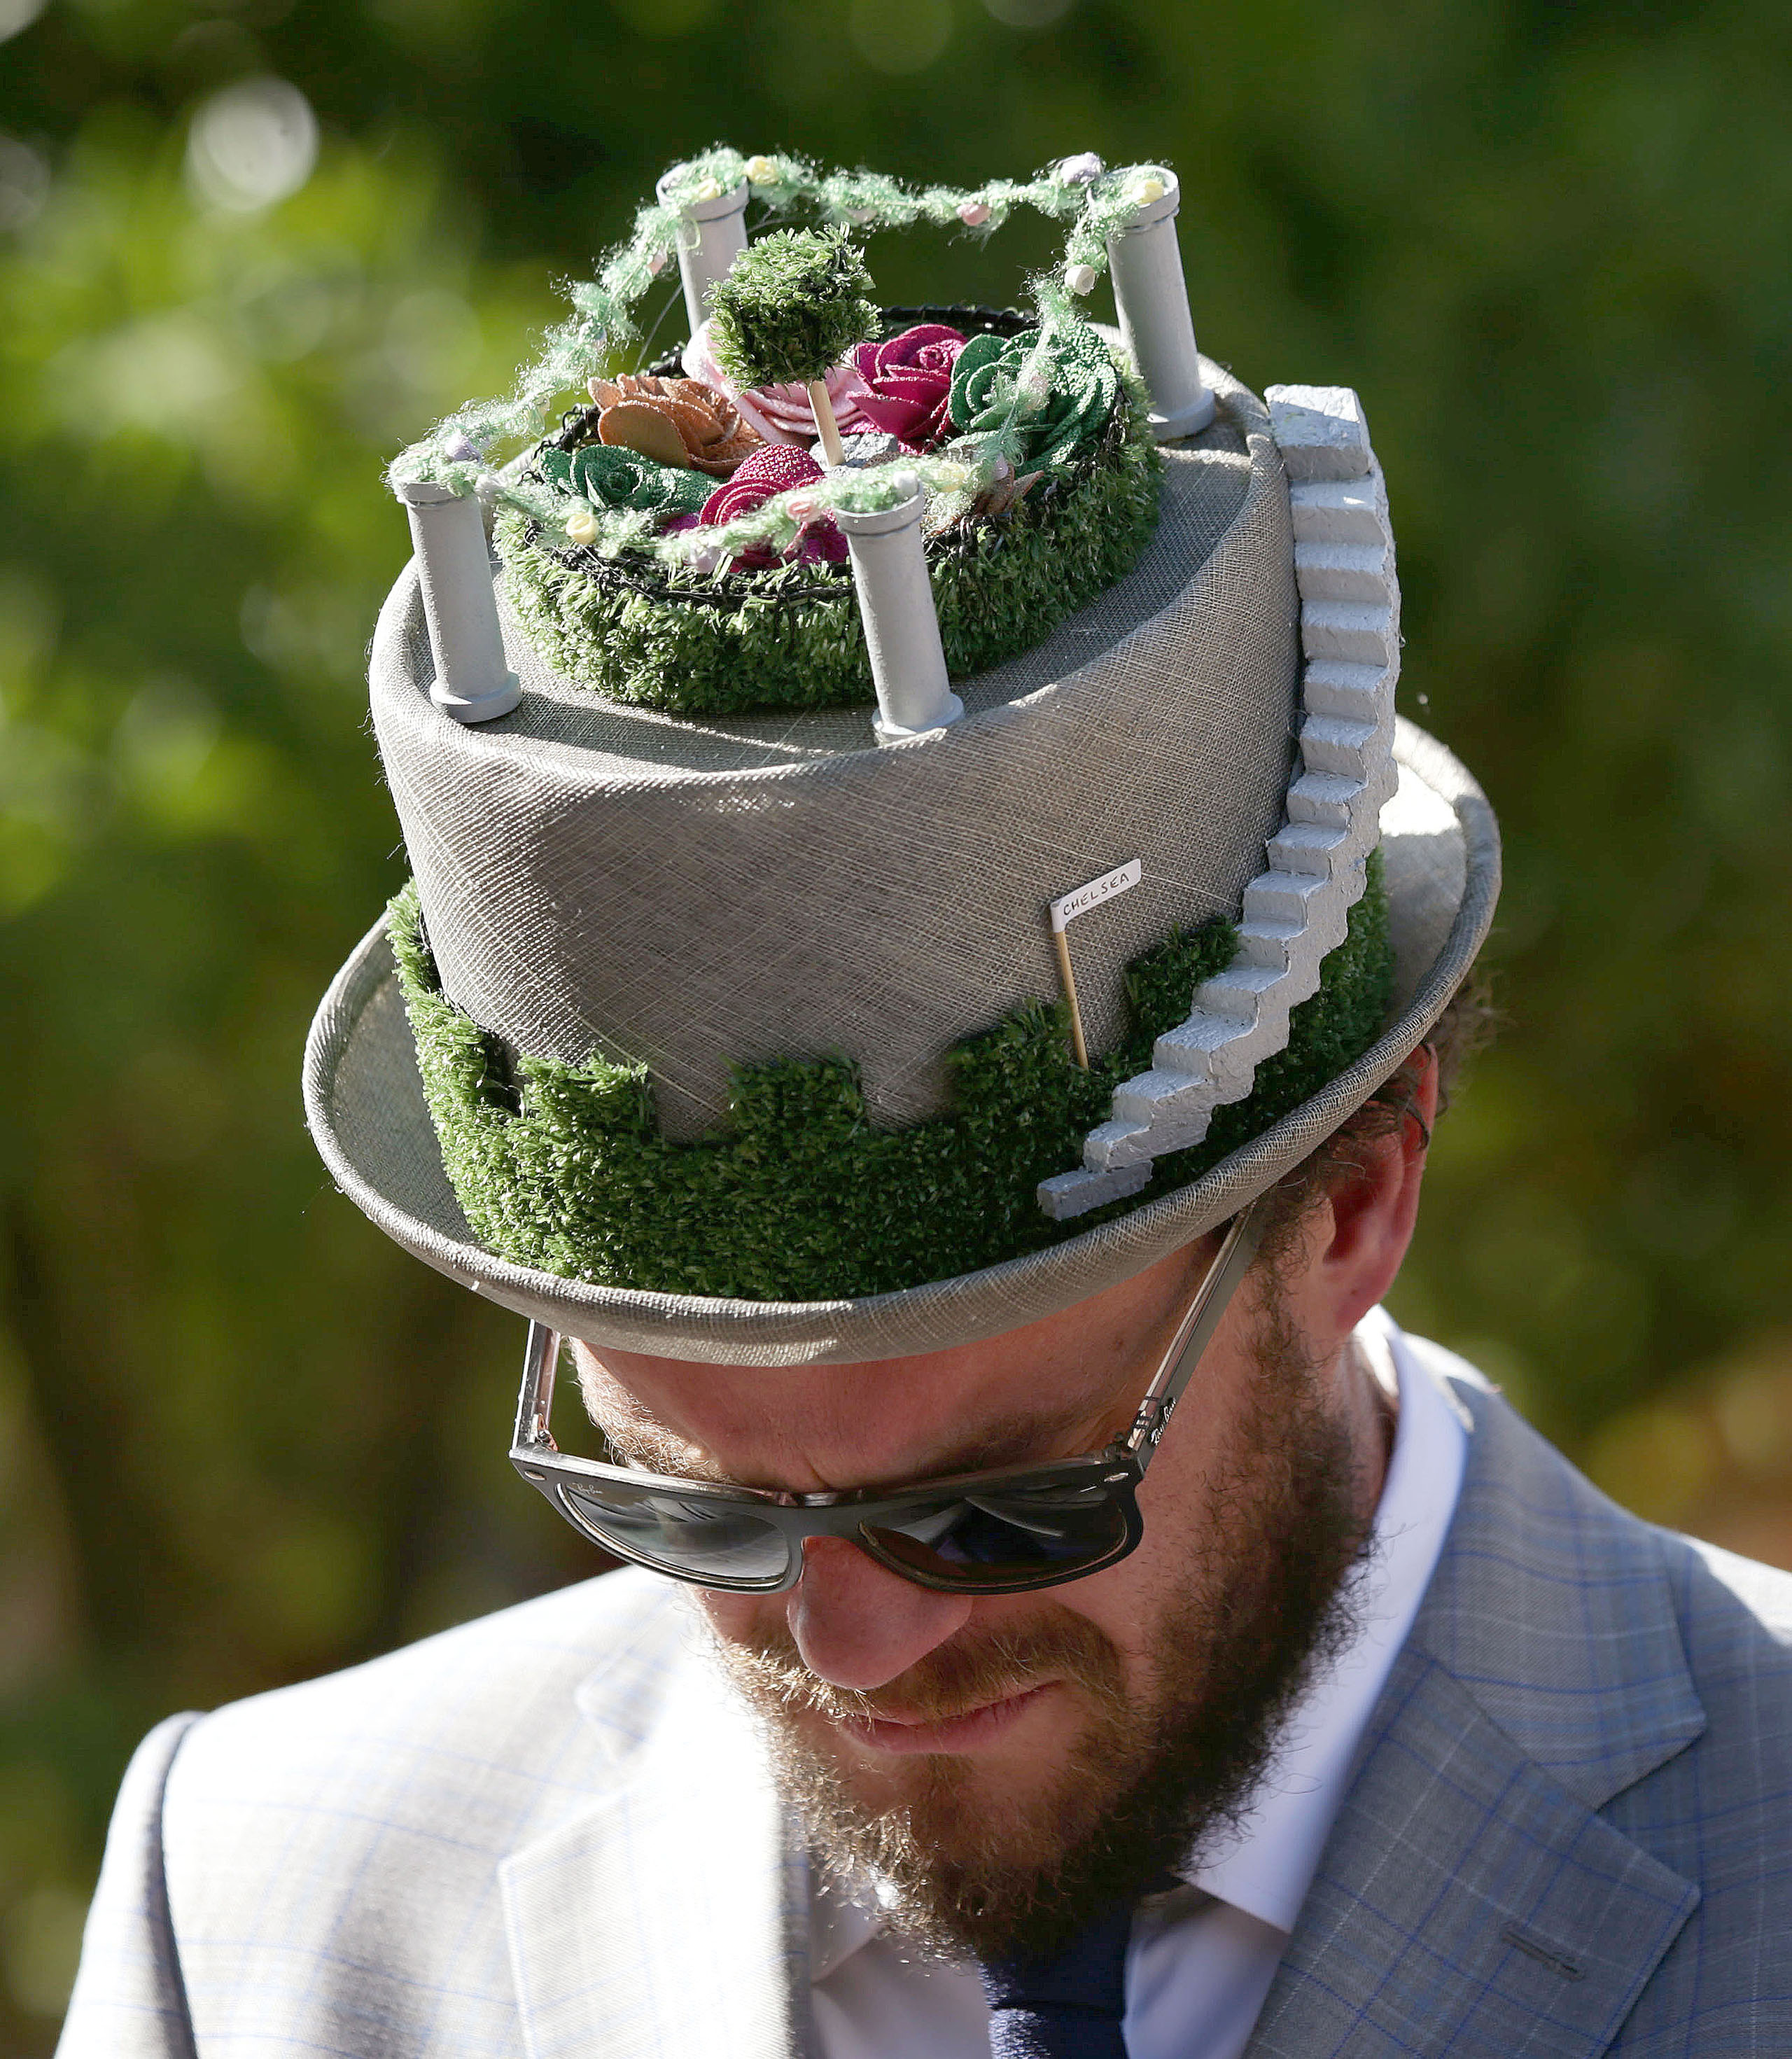 Visitor Michael Conway wears a floral hat during a press day ahead of the Chelsea Flower Show at the Royal Hospital Chelsea in London, May 23, 2016.